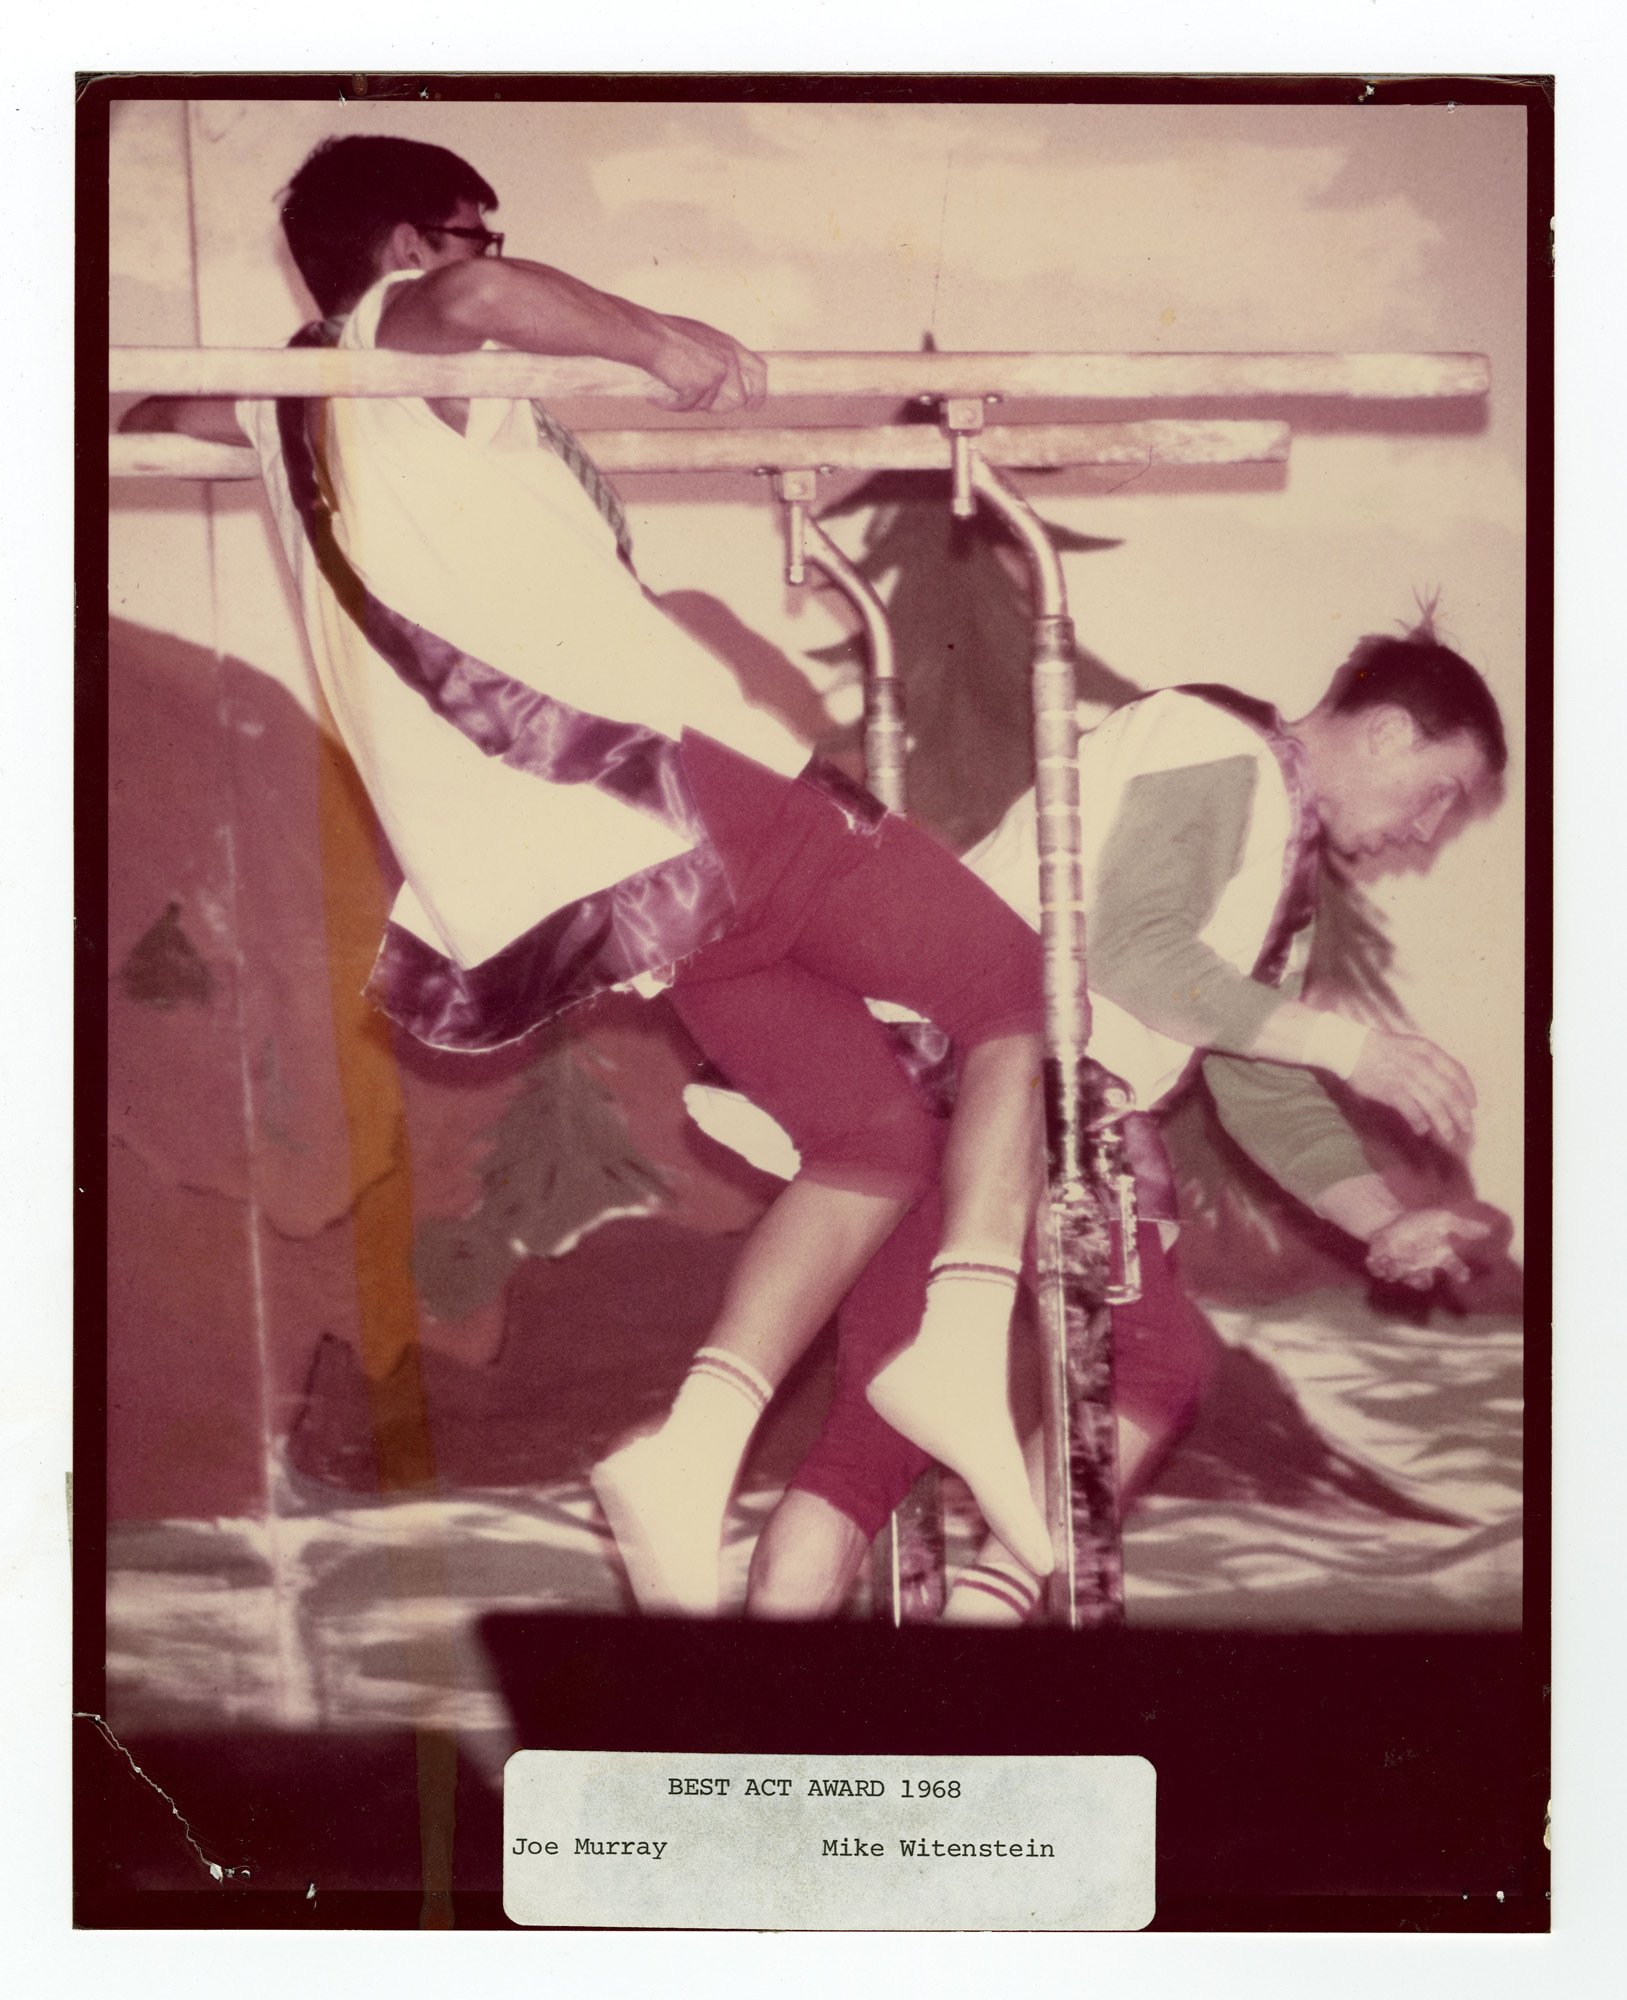 1968 - Comedy Parallel Bars